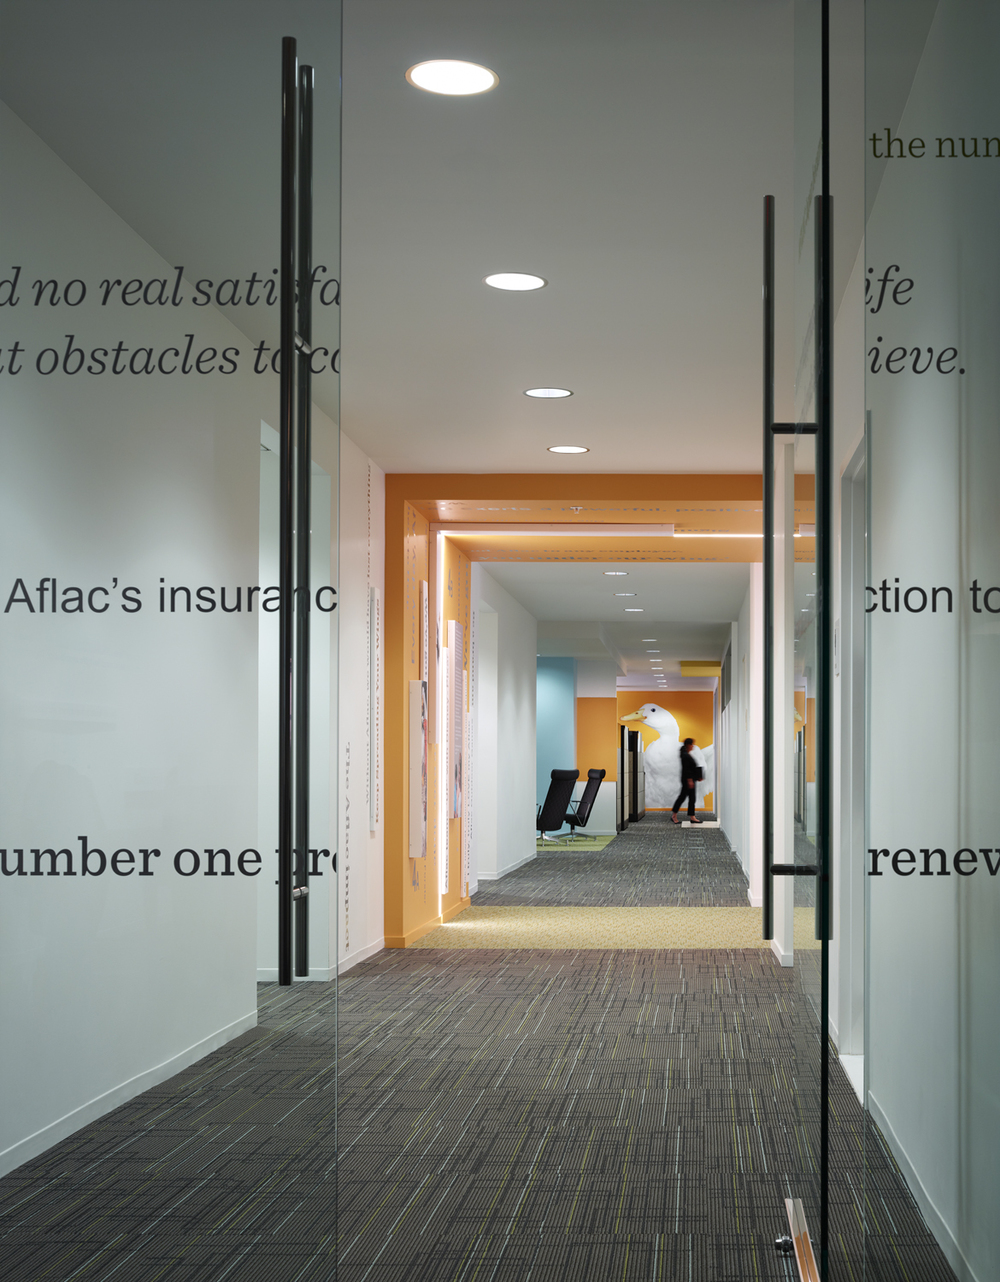 HIPAT_Aflac_conference center entrance with person.jpg